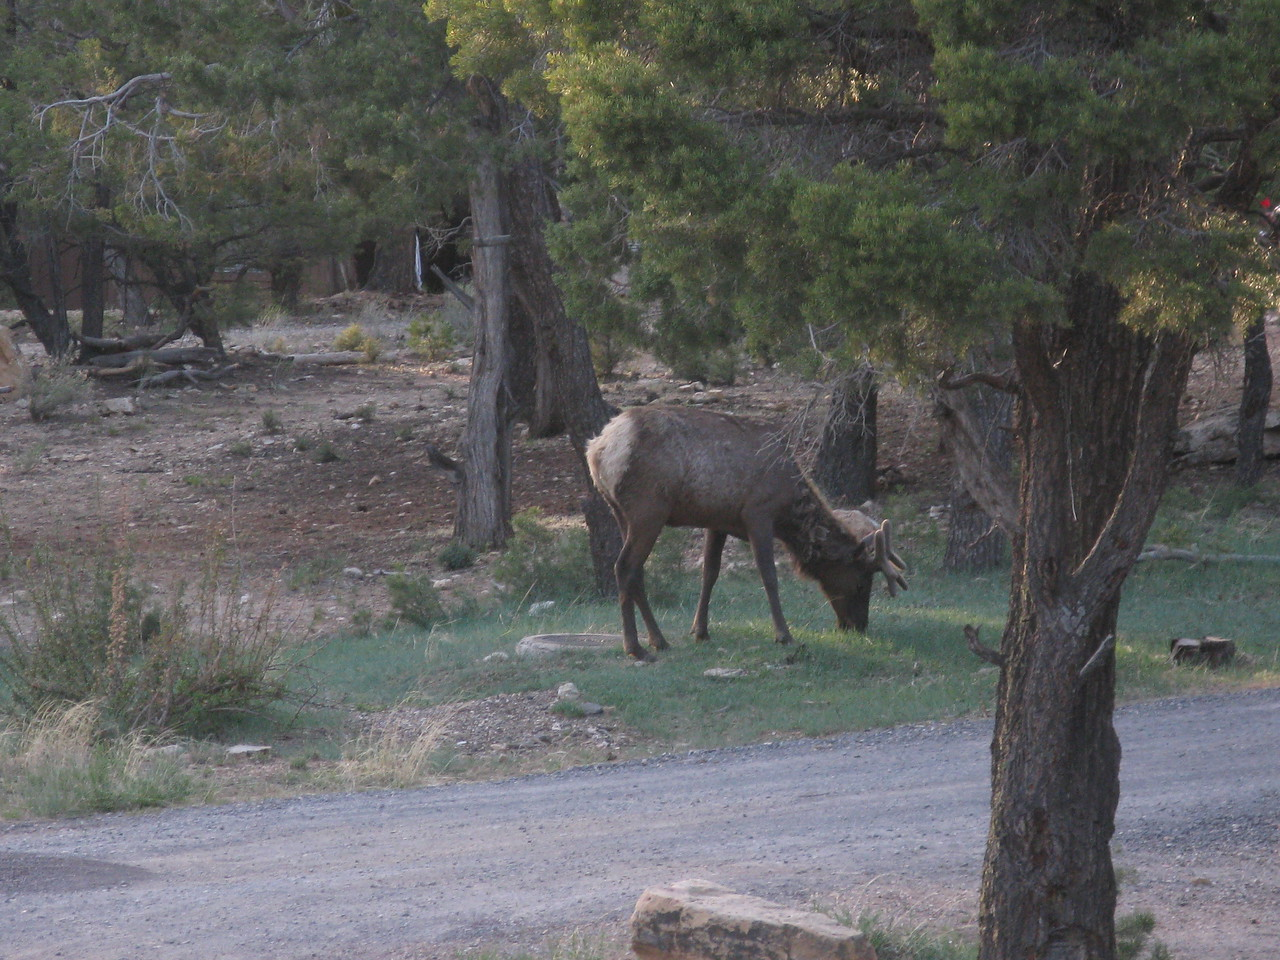 The elk paid no attention to us.